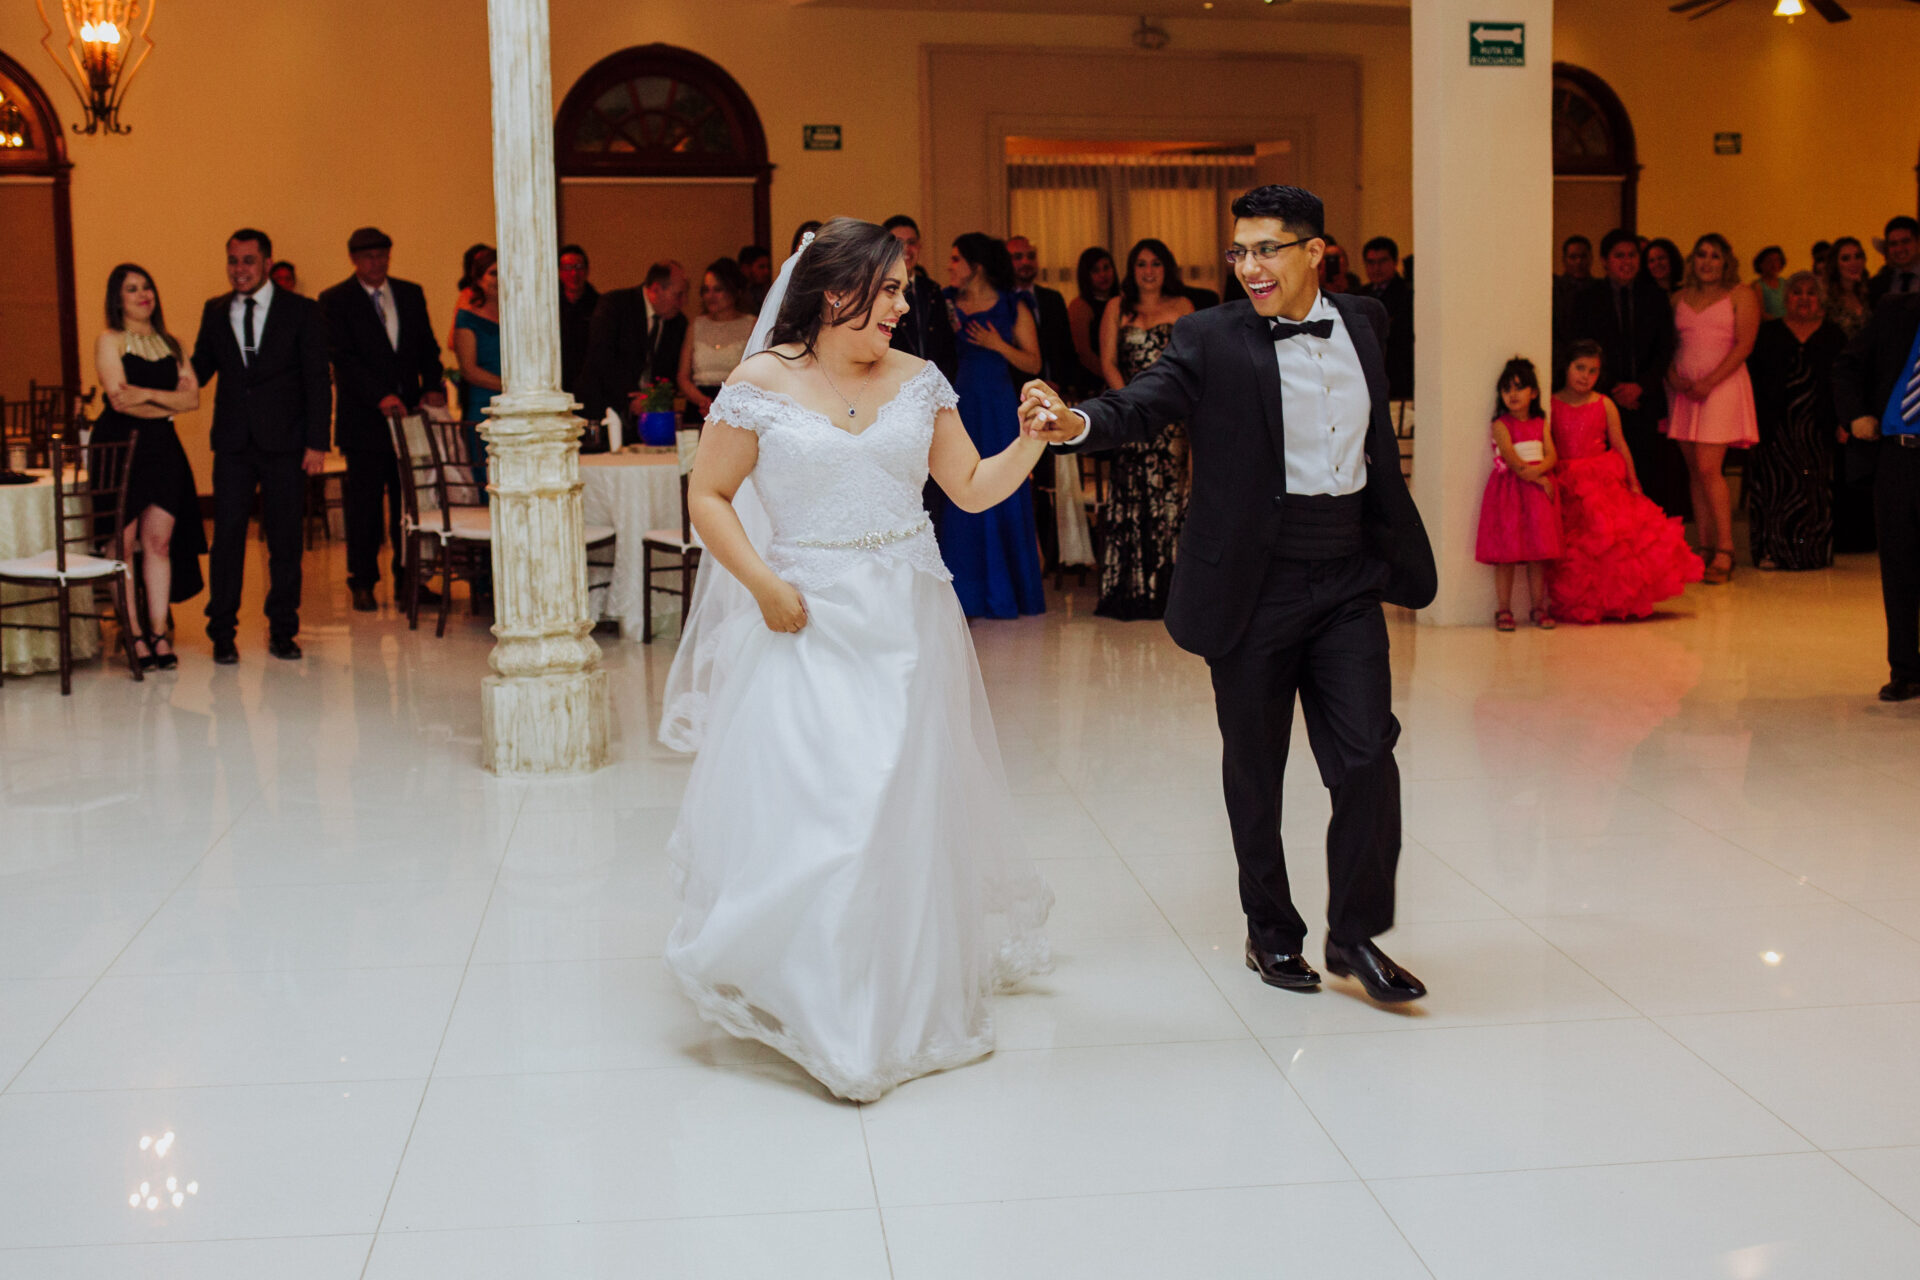 javier_noriega_fotografo_bodas_zacatecas_chihuahua_wedding_photographer27